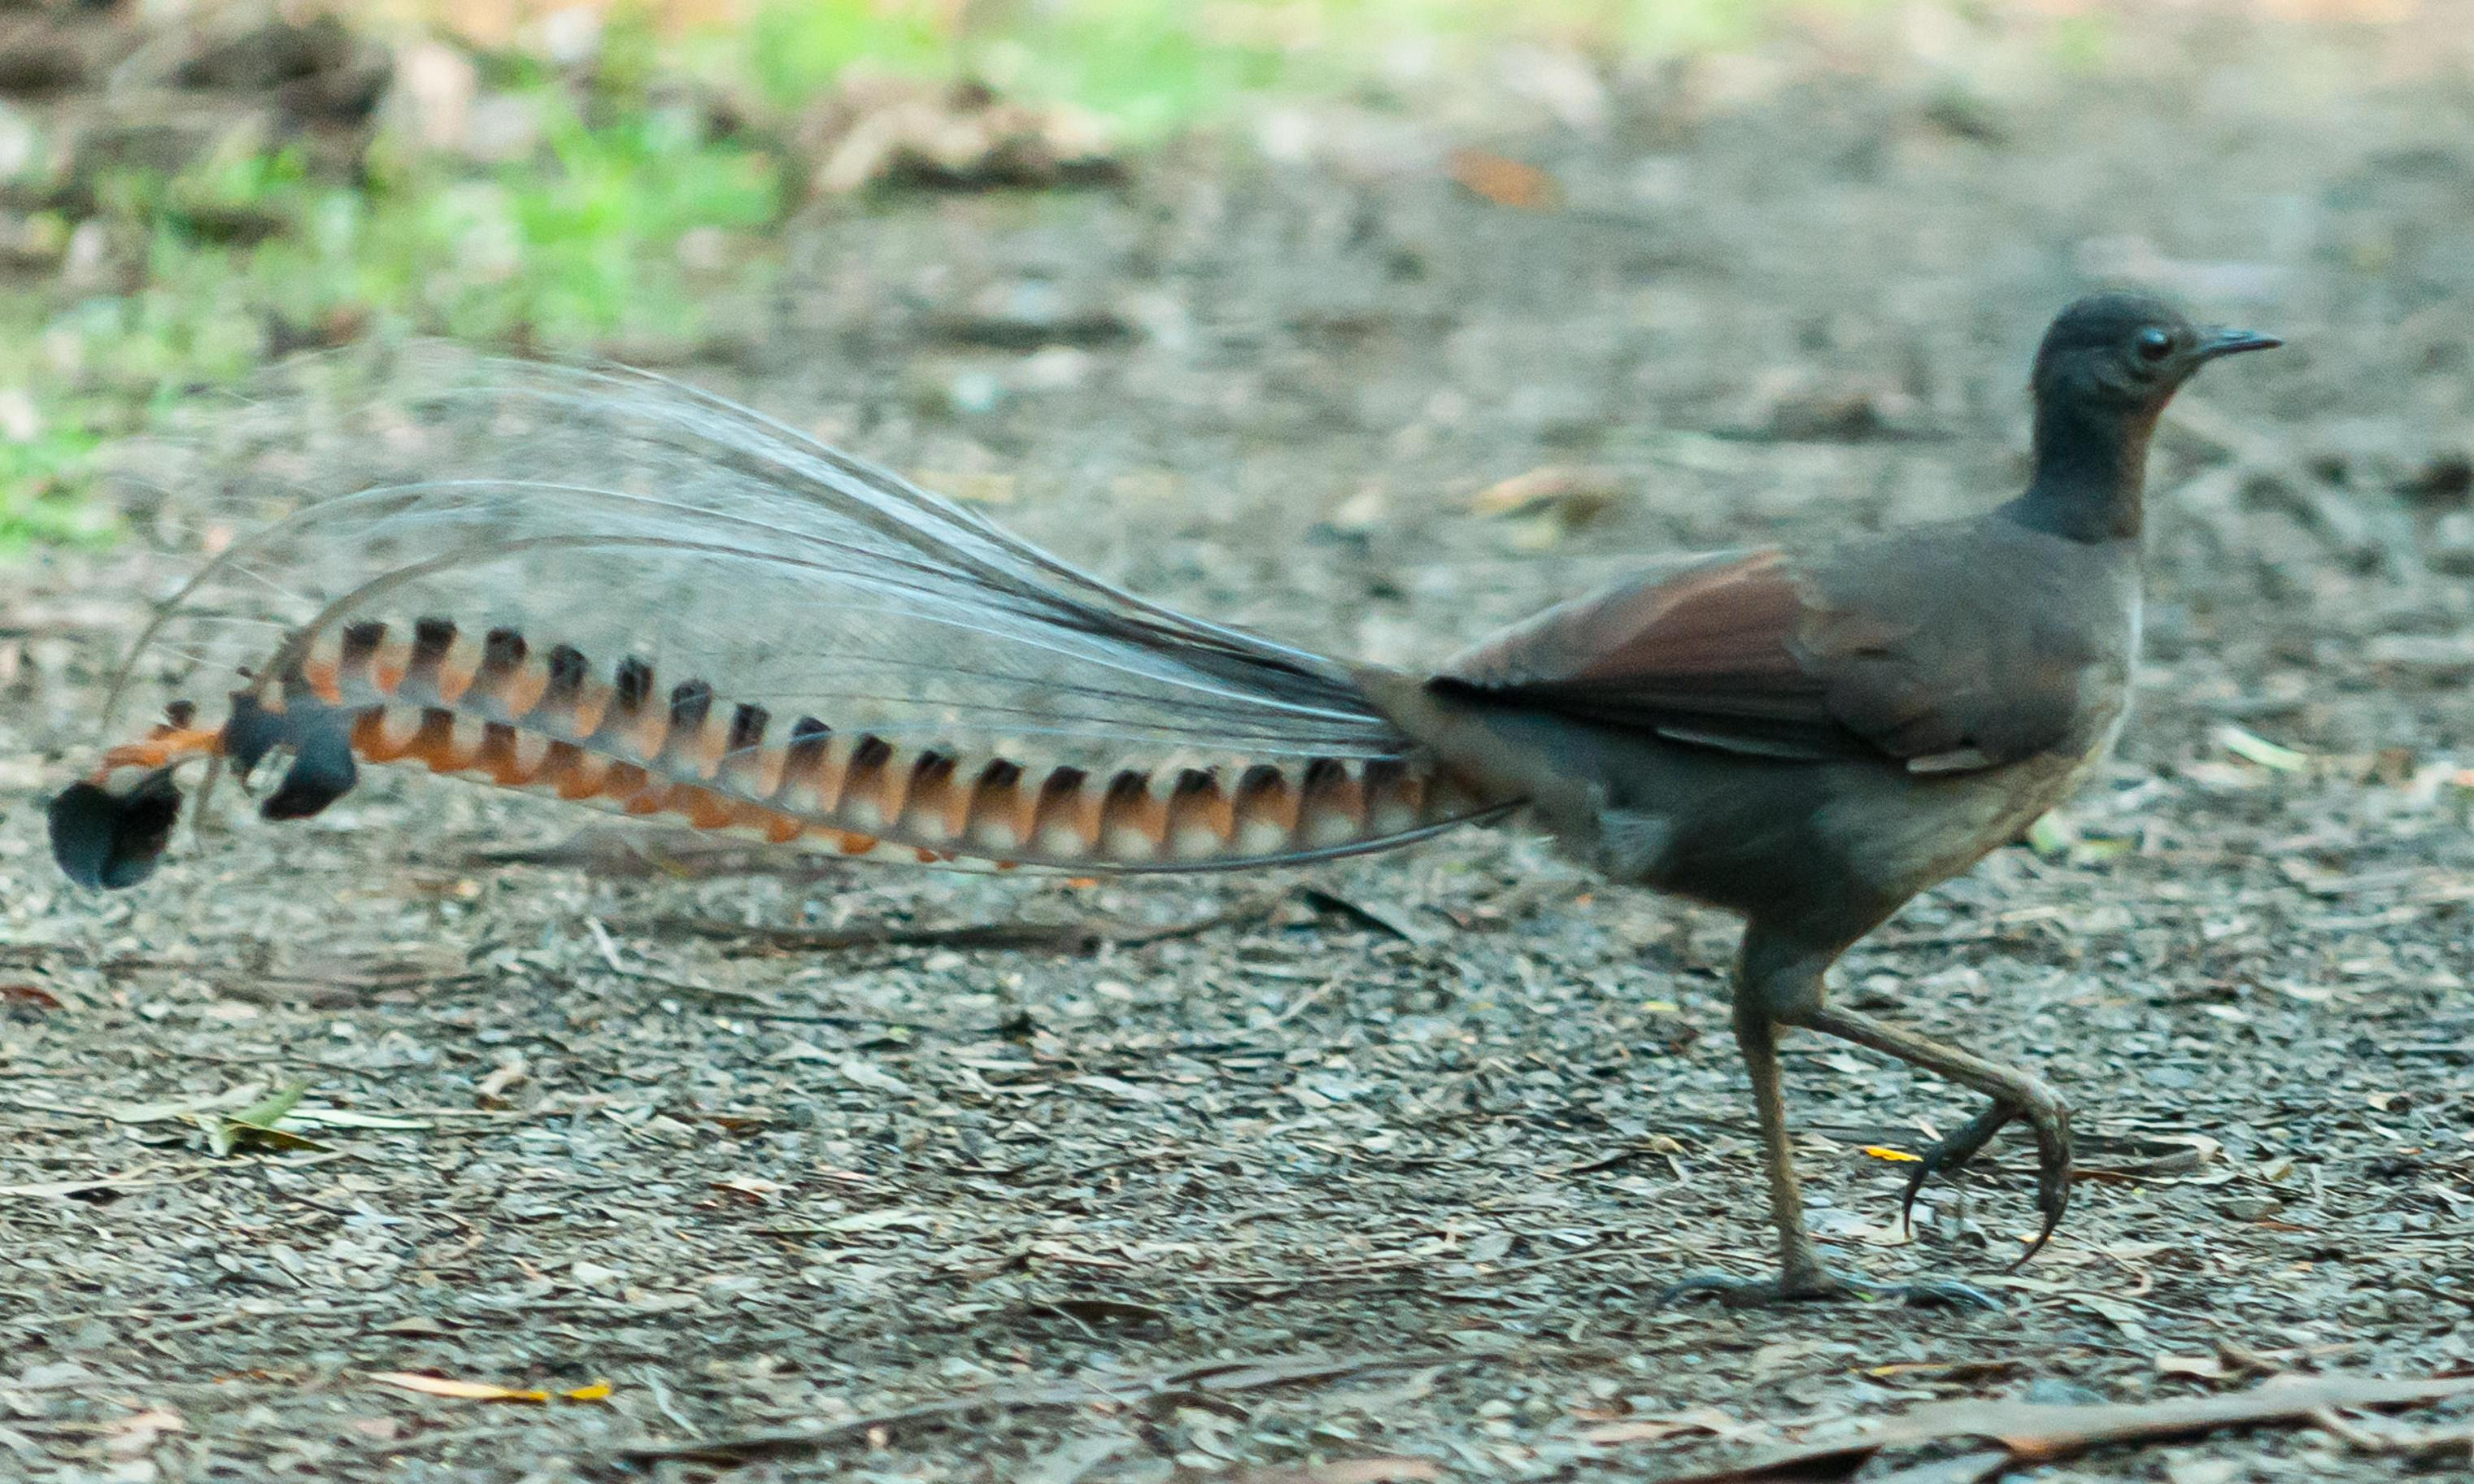 Lyrebird may join threatened species, as scale of bird habitat lost to bushfires emerges